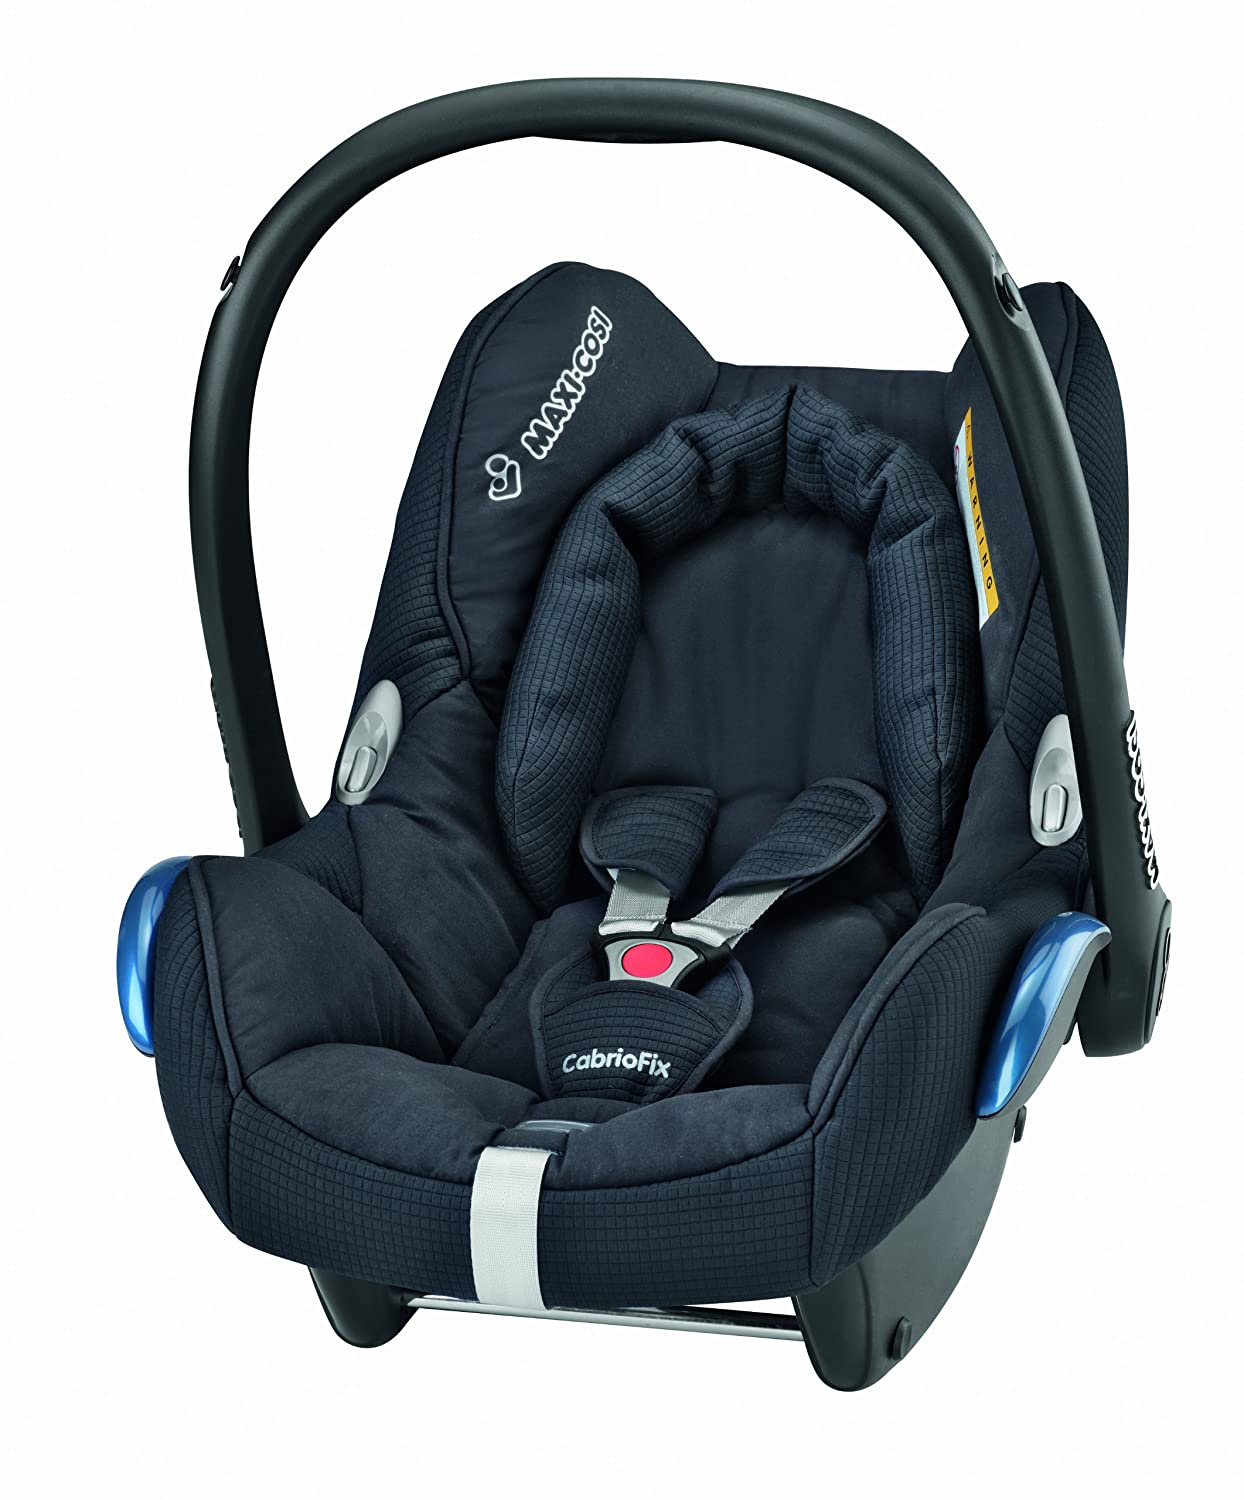 maxi cosi cabriofix group 0 baby car seat total black 2014 range baby. Black Bedroom Furniture Sets. Home Design Ideas